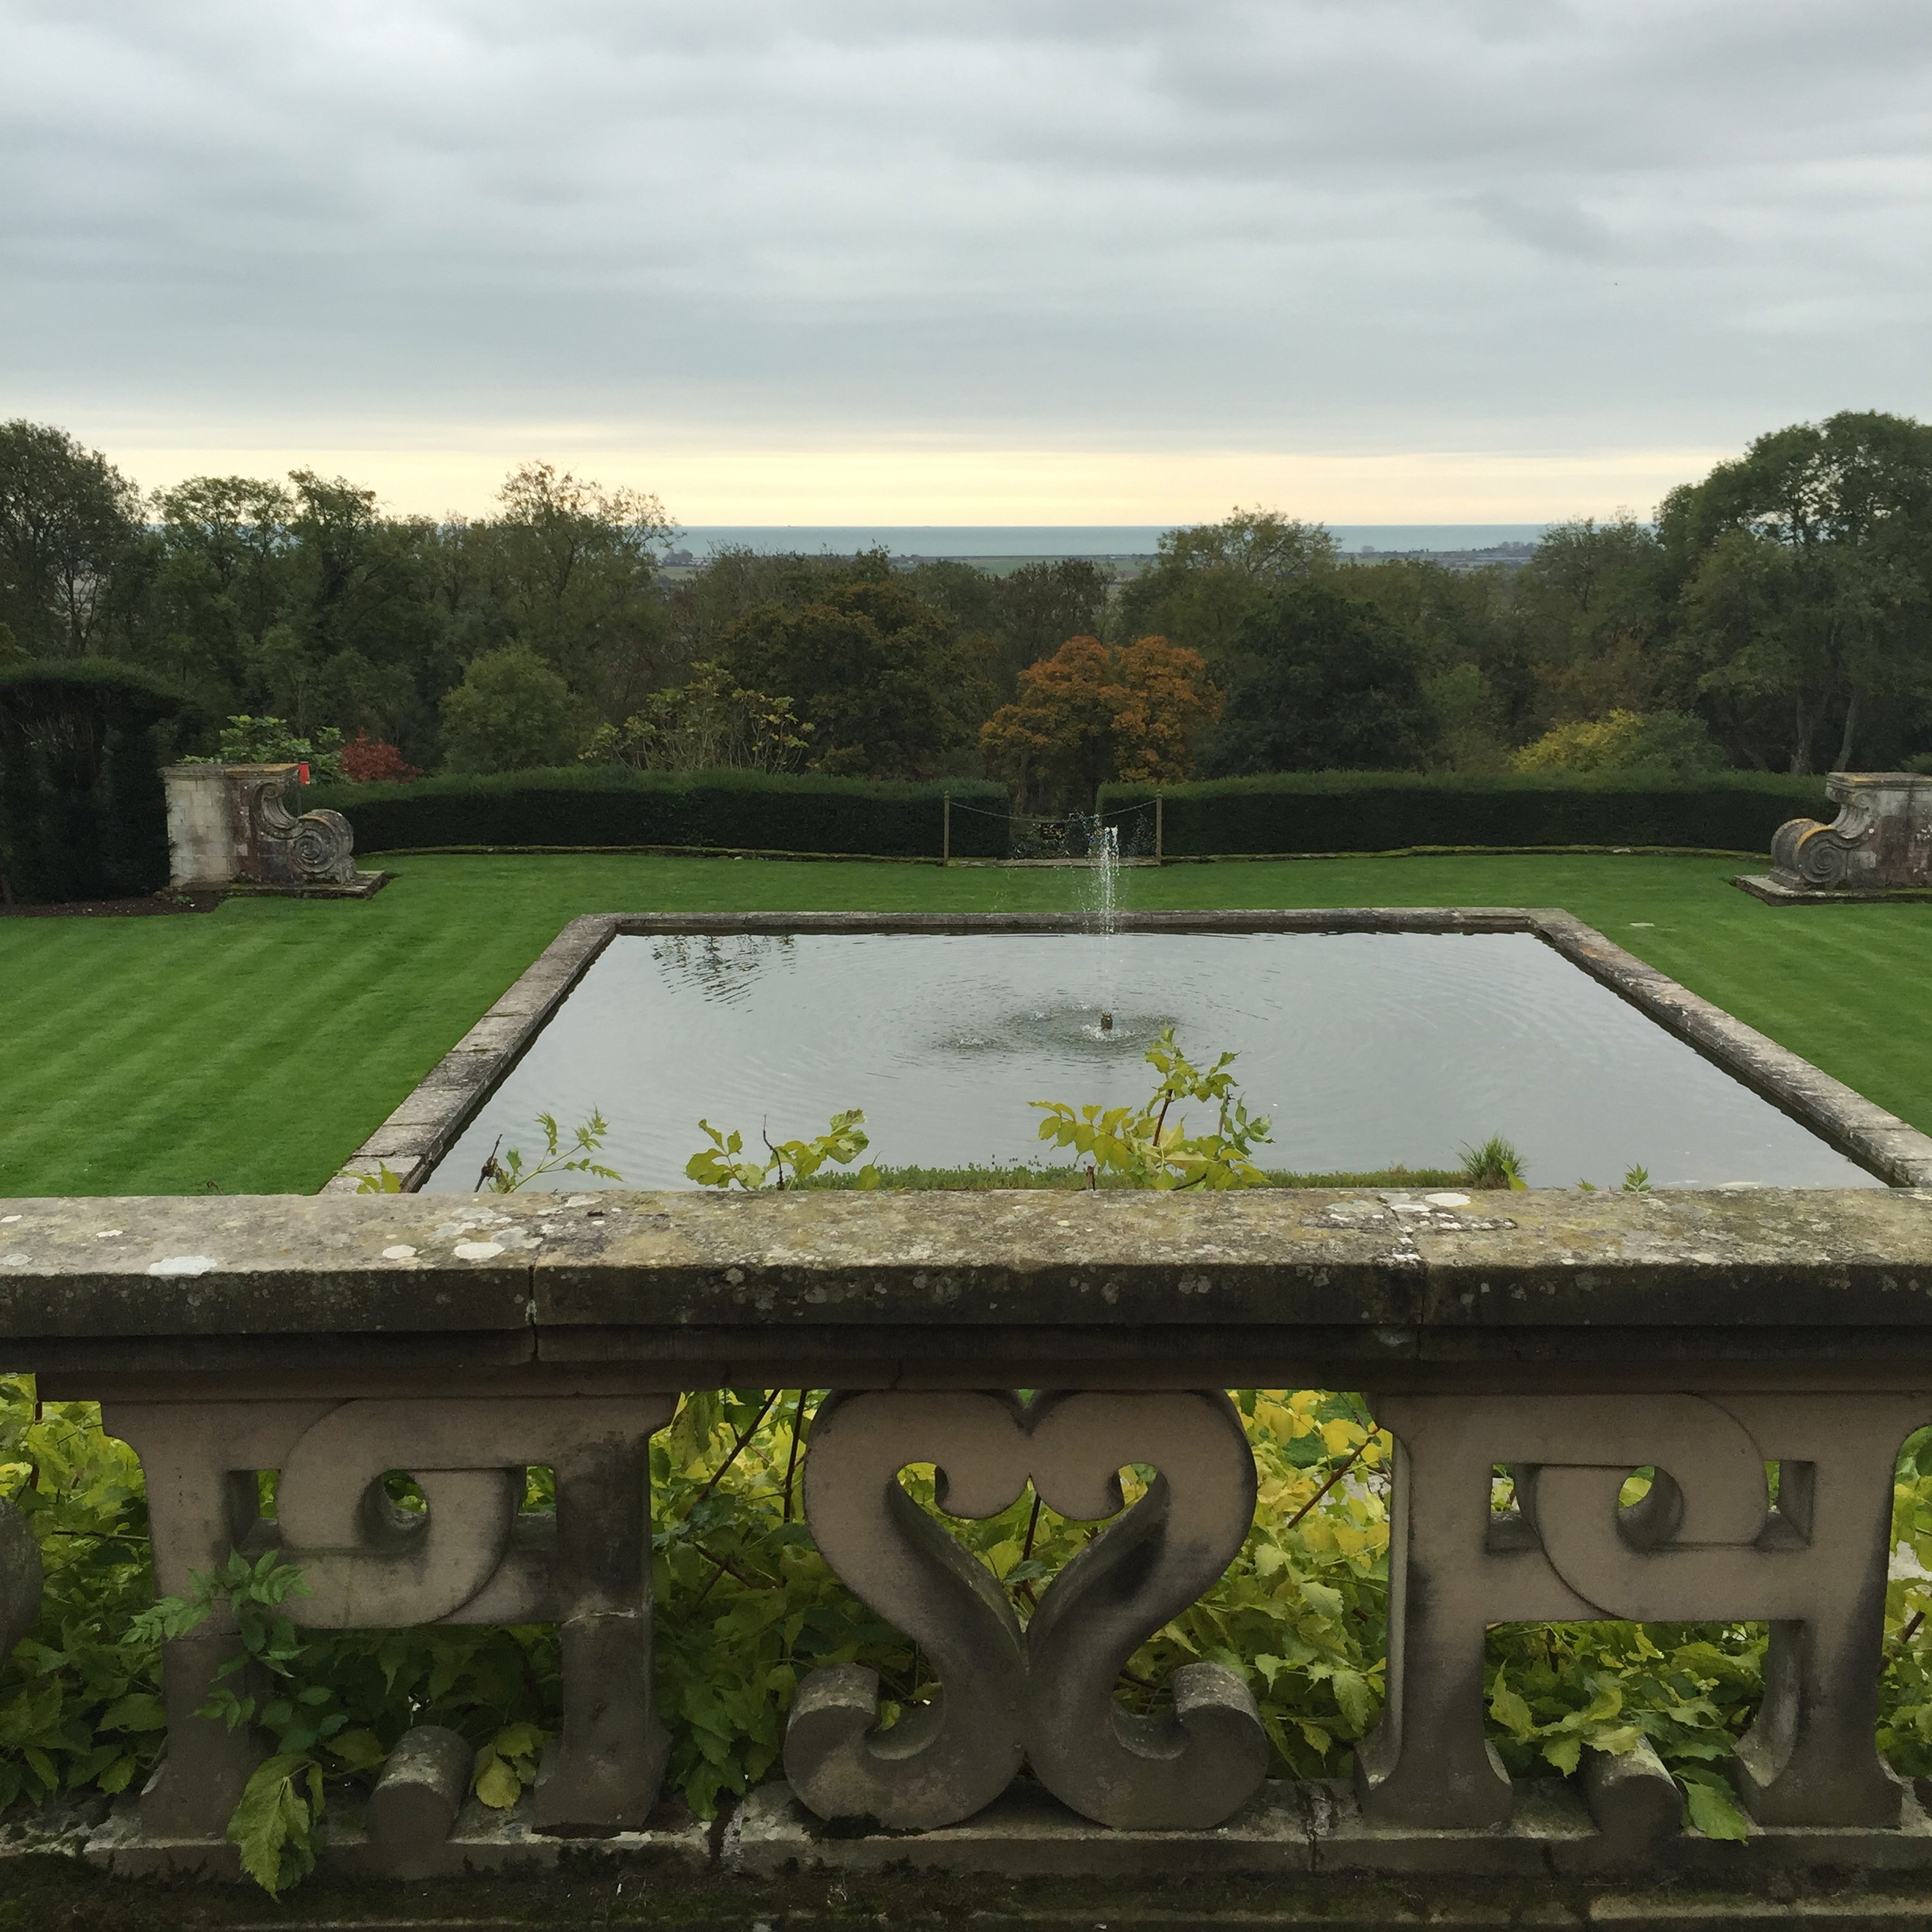 Port Lympne: Matrimony at the Fascist Zoo